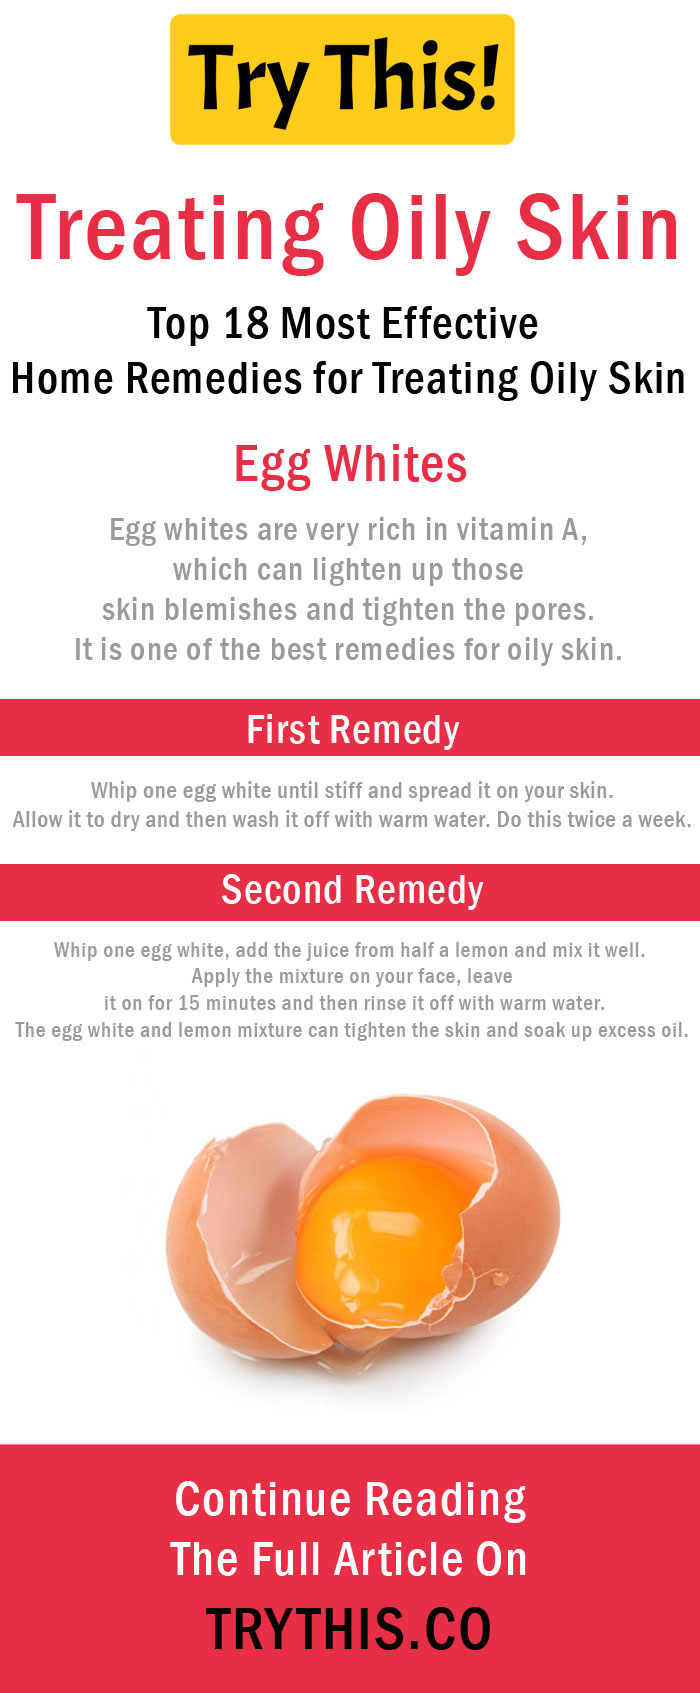 Home Remedies for Treating Oily Skin - Egg Whites